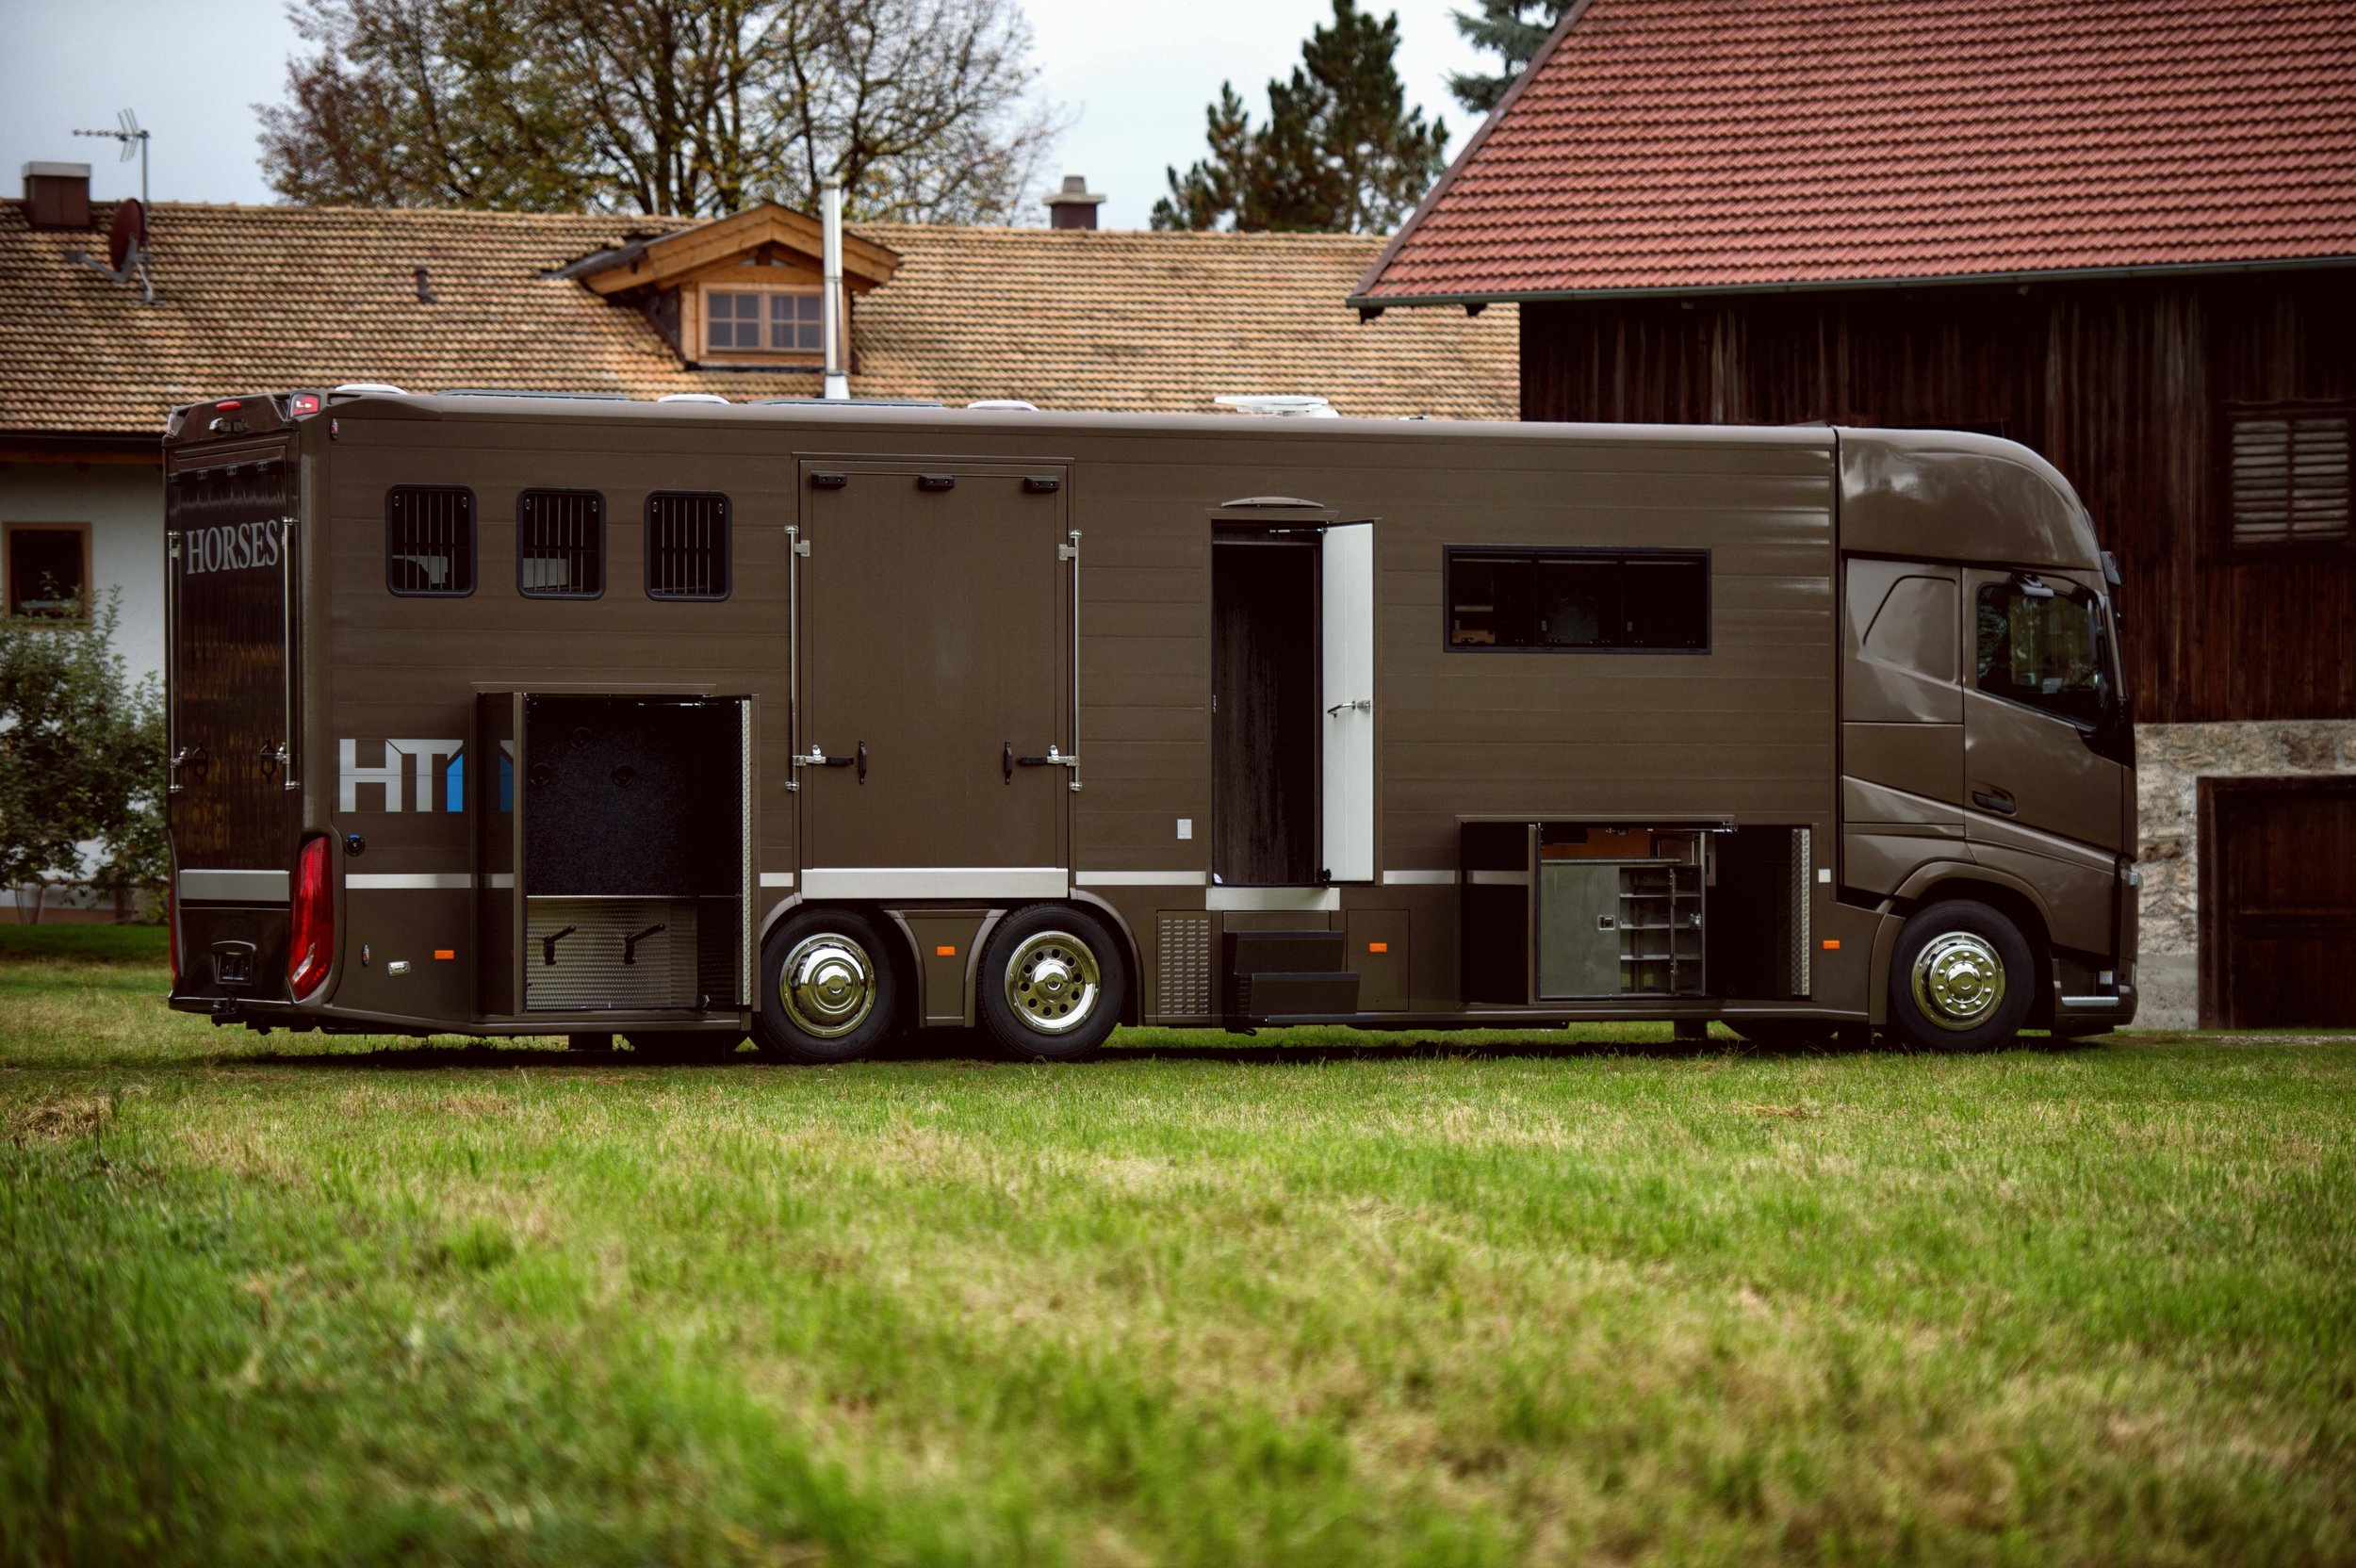 Horse Truck Pop out Volvo Aniko Towers Photo Oct17-61.jpg